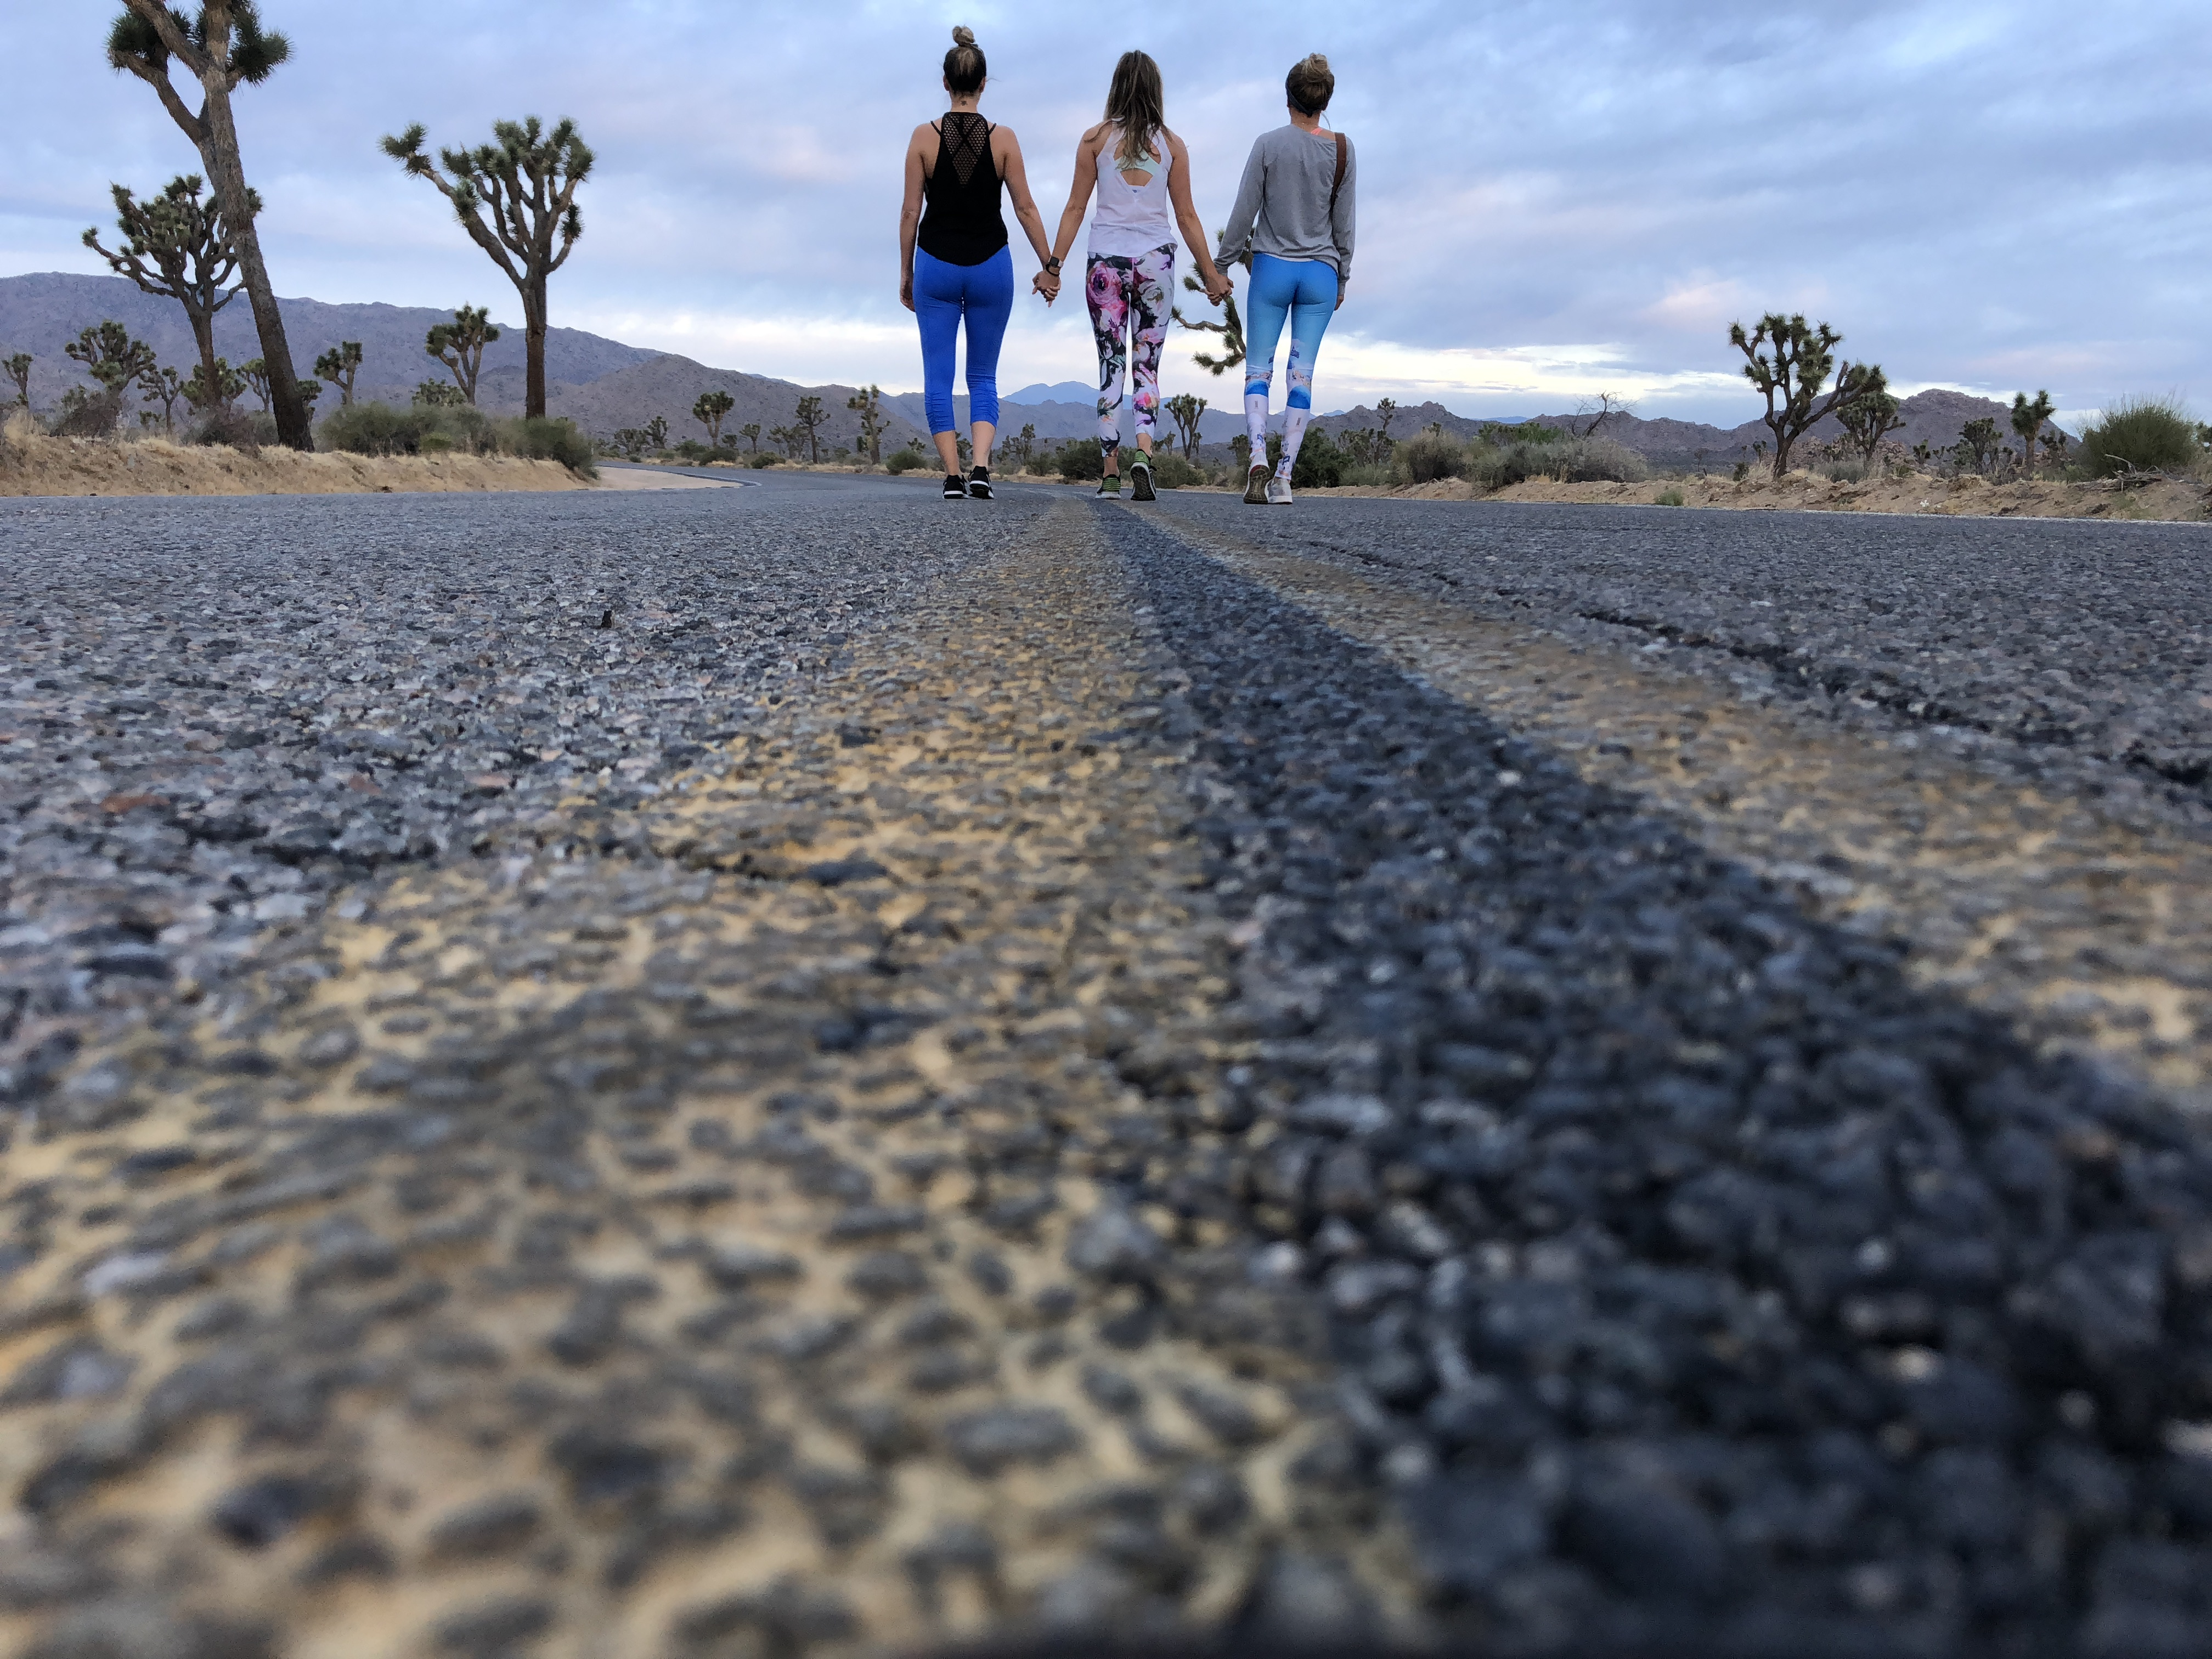 which entrance in Joshua tree to stay near